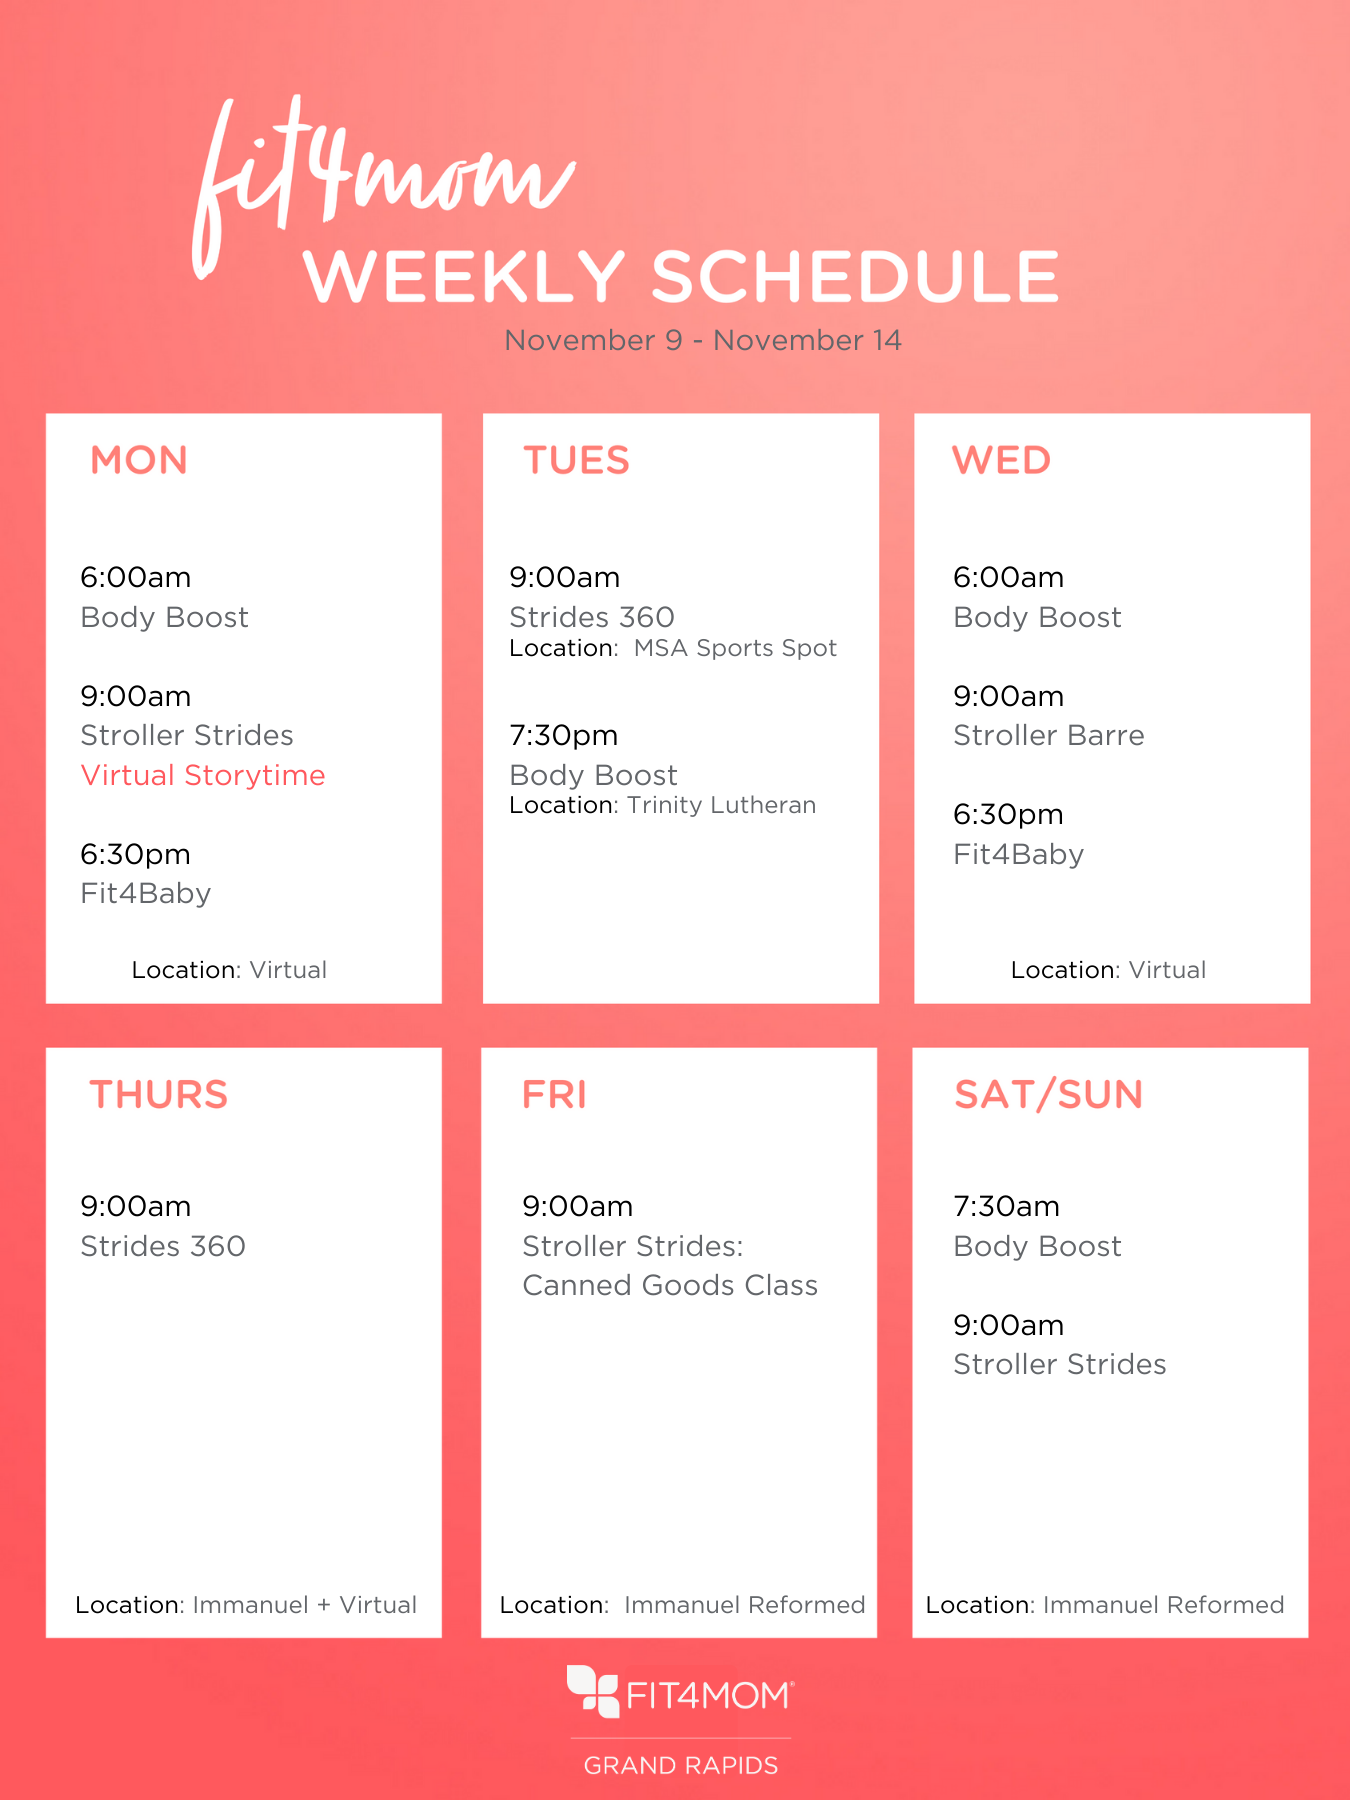 new weekly schedule 11_9.png